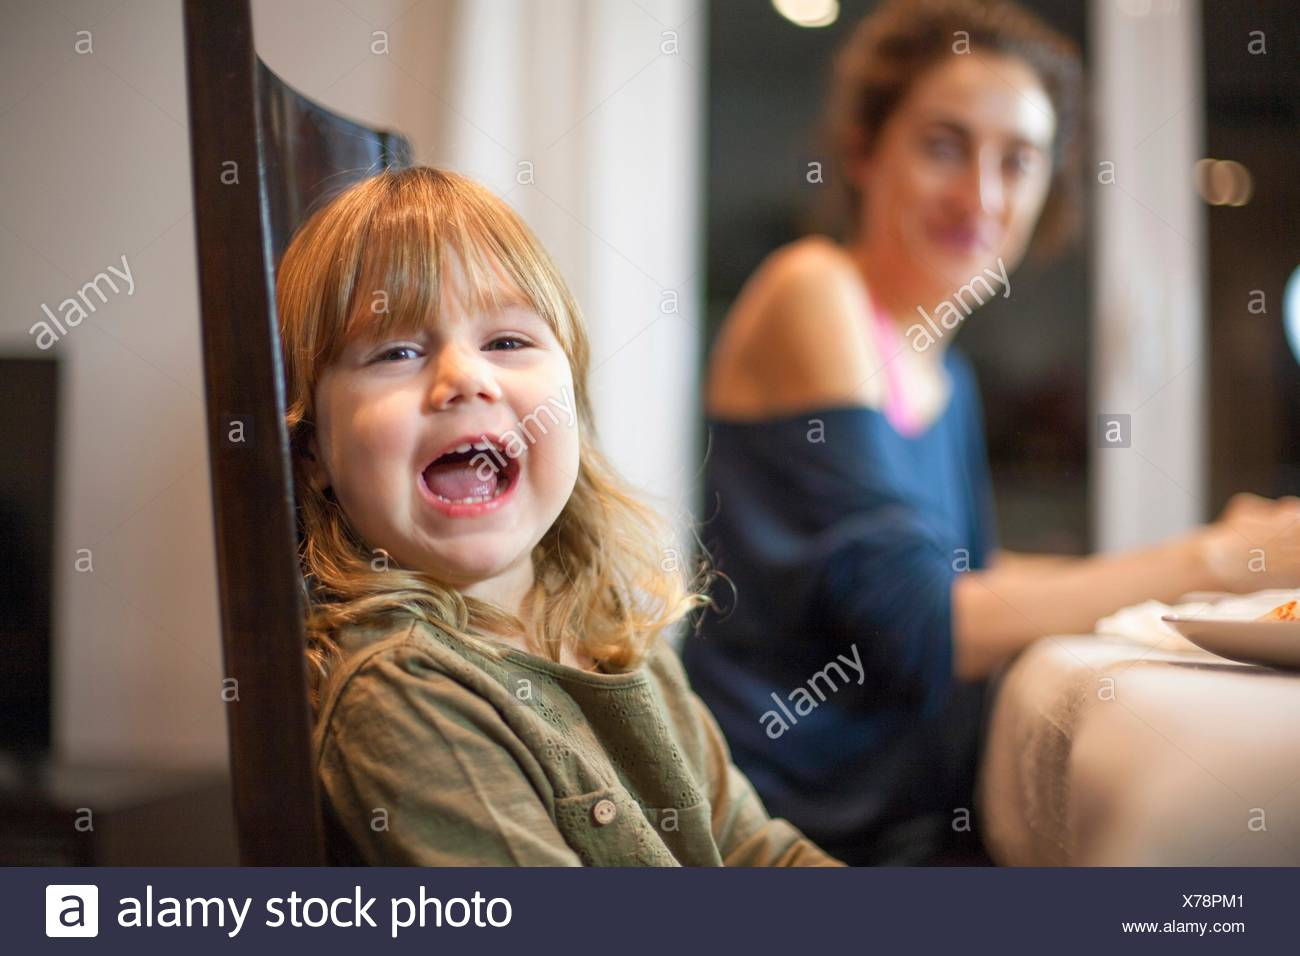 Three years old blonde child sitting at meal table with mother, looking at camera and speaking or shouting. - Stock Image